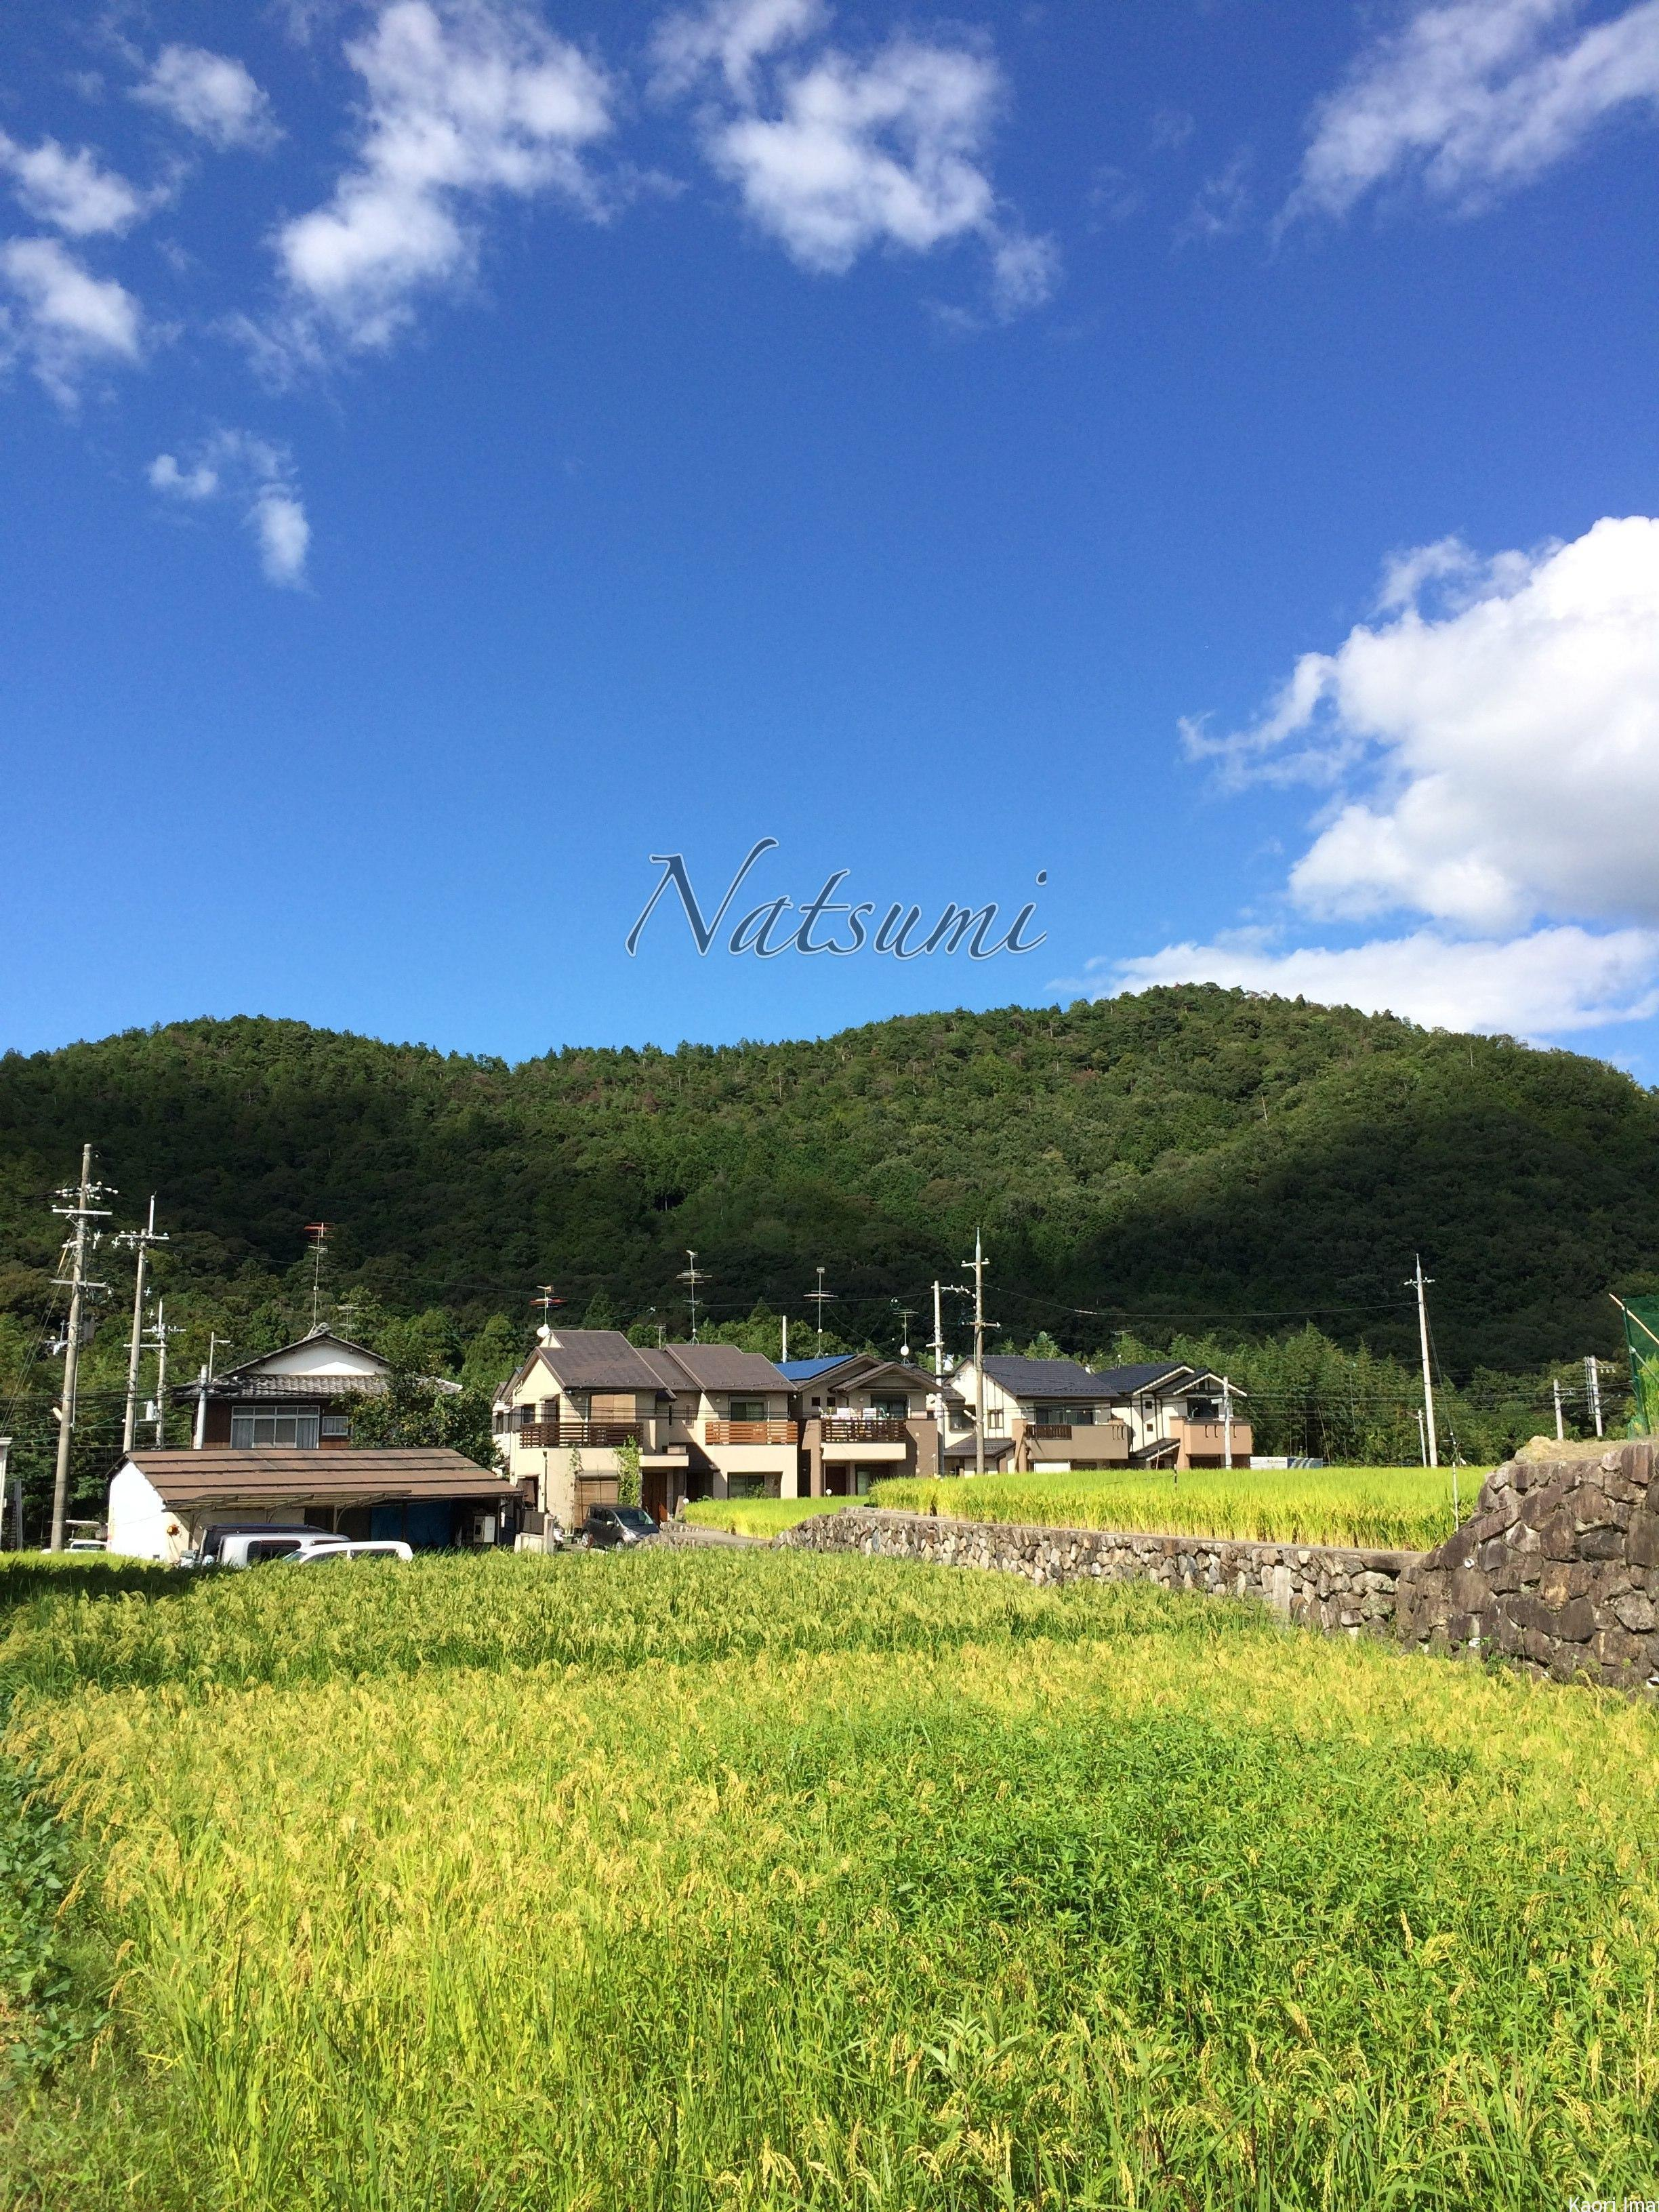 skitched-20150719-101941